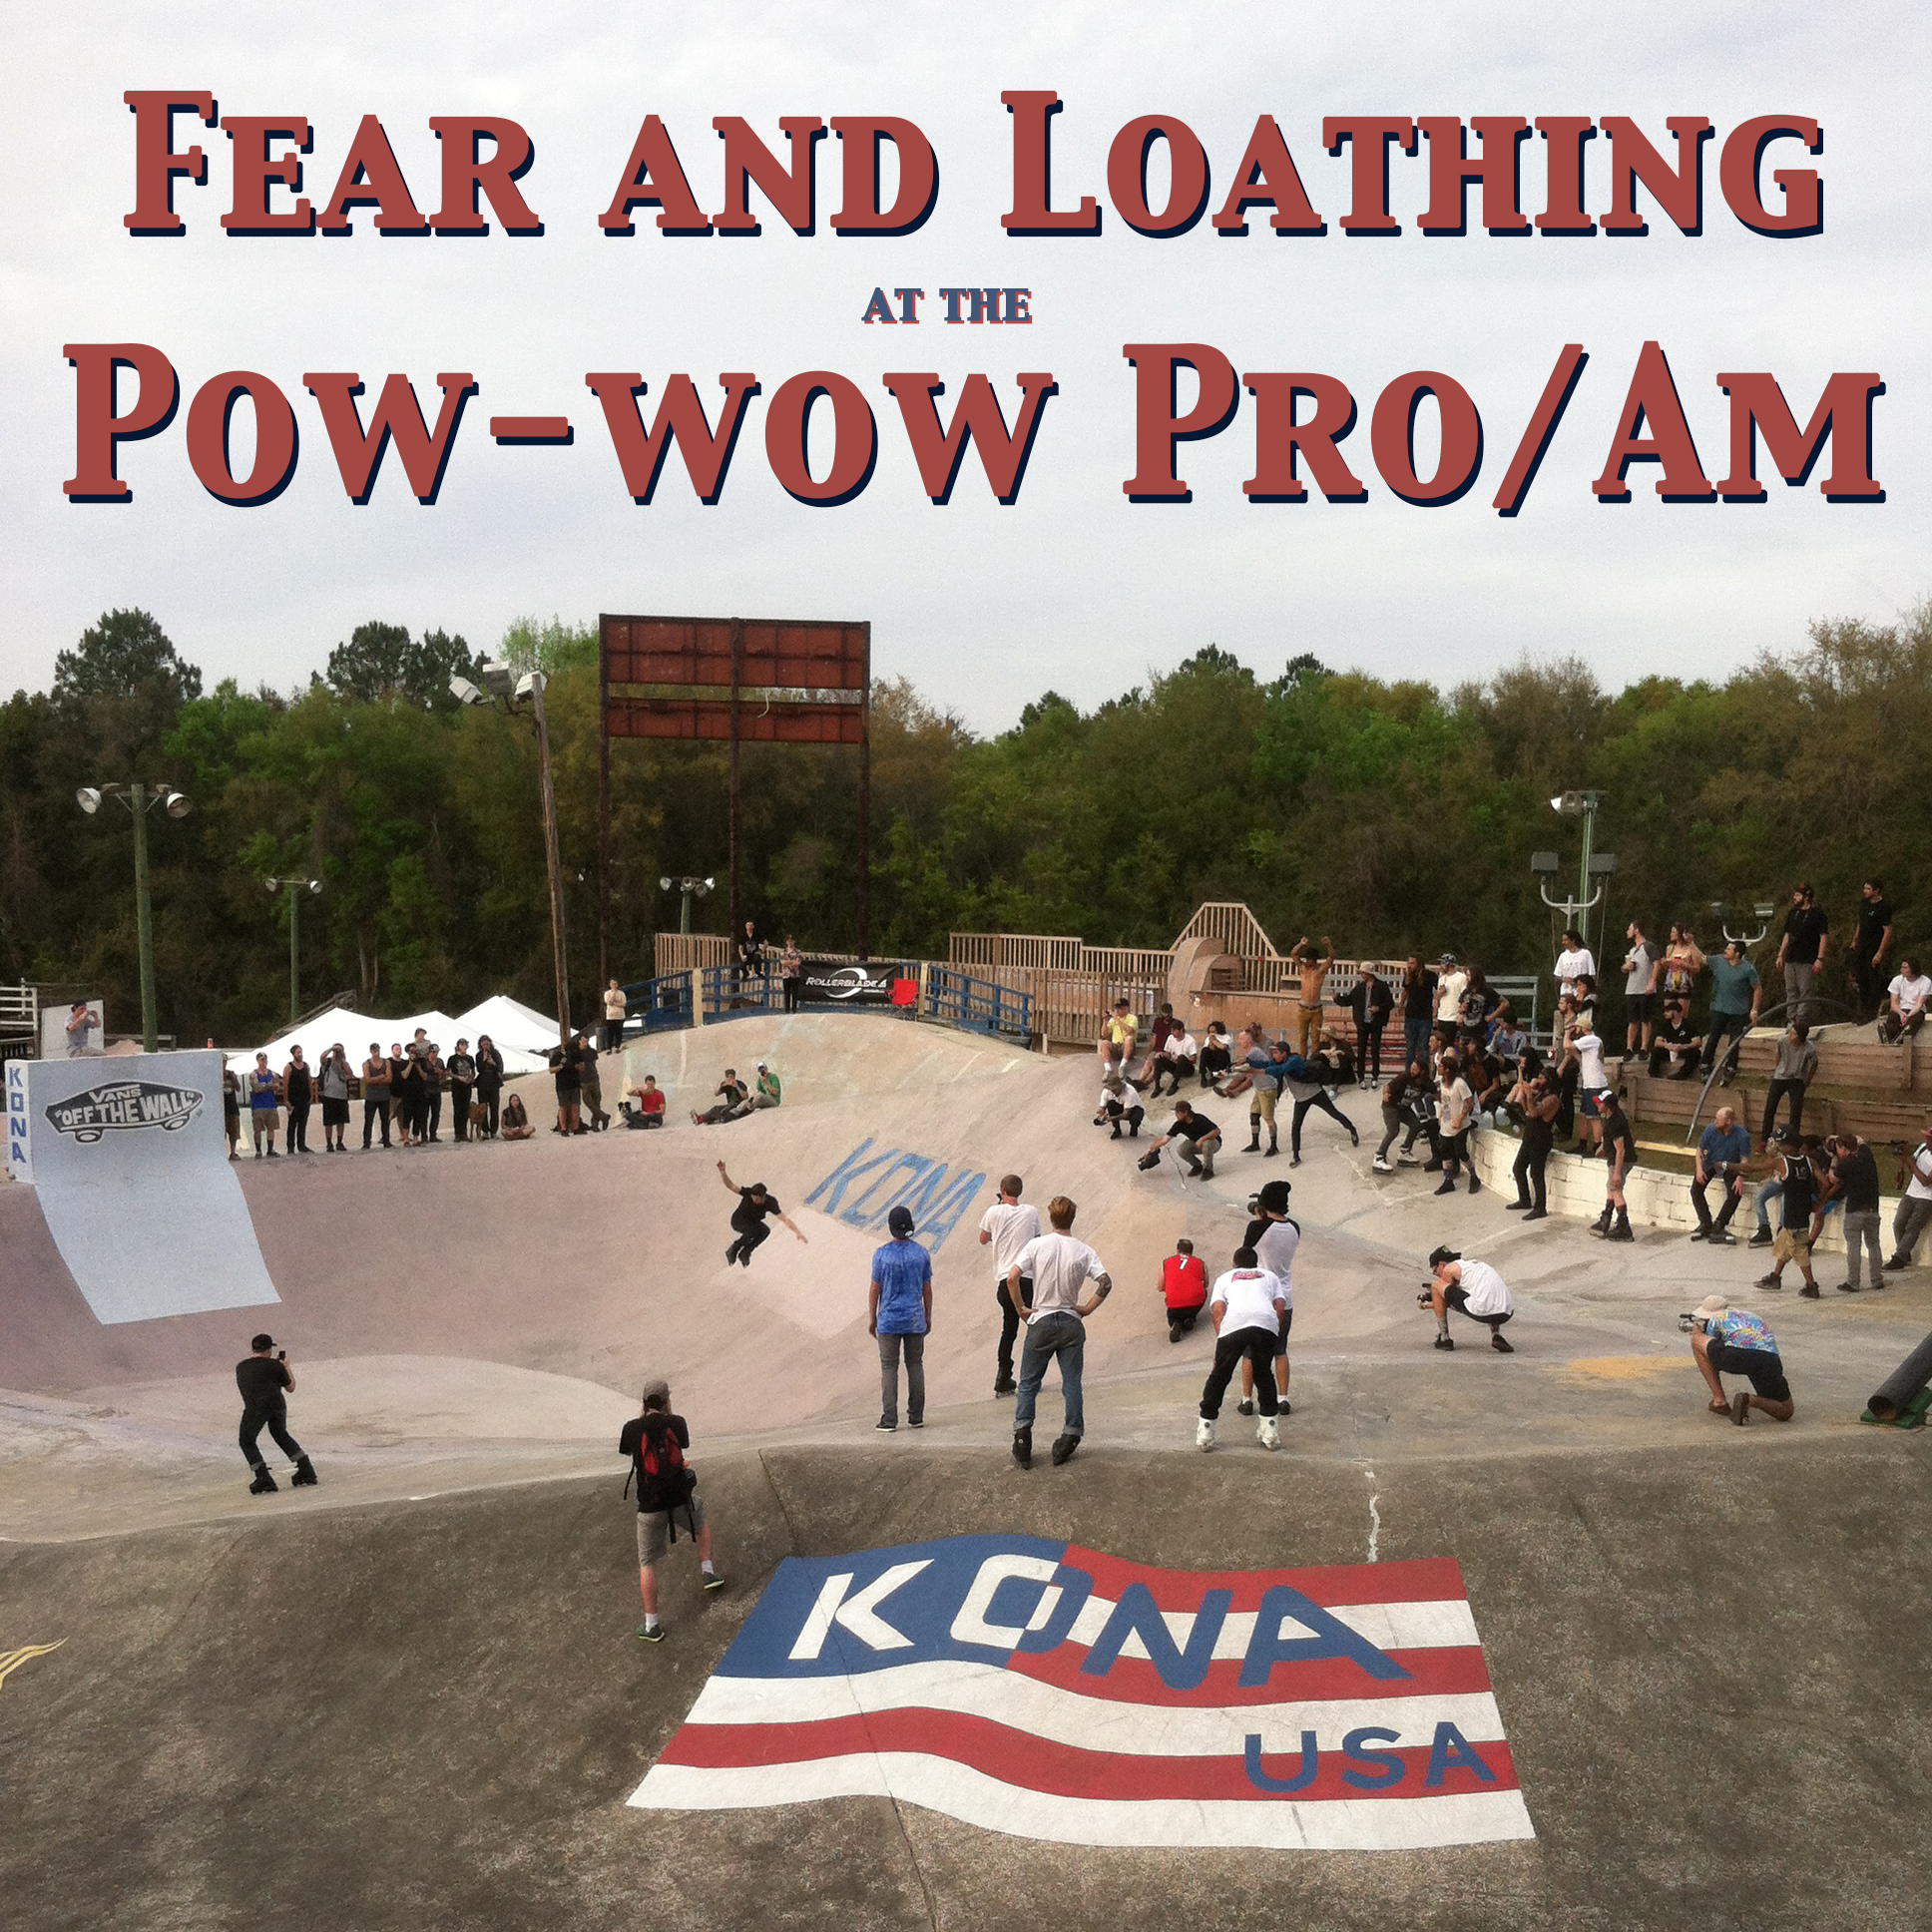 RTP: Fear and Loathing at the Pow-wow Pro/Am